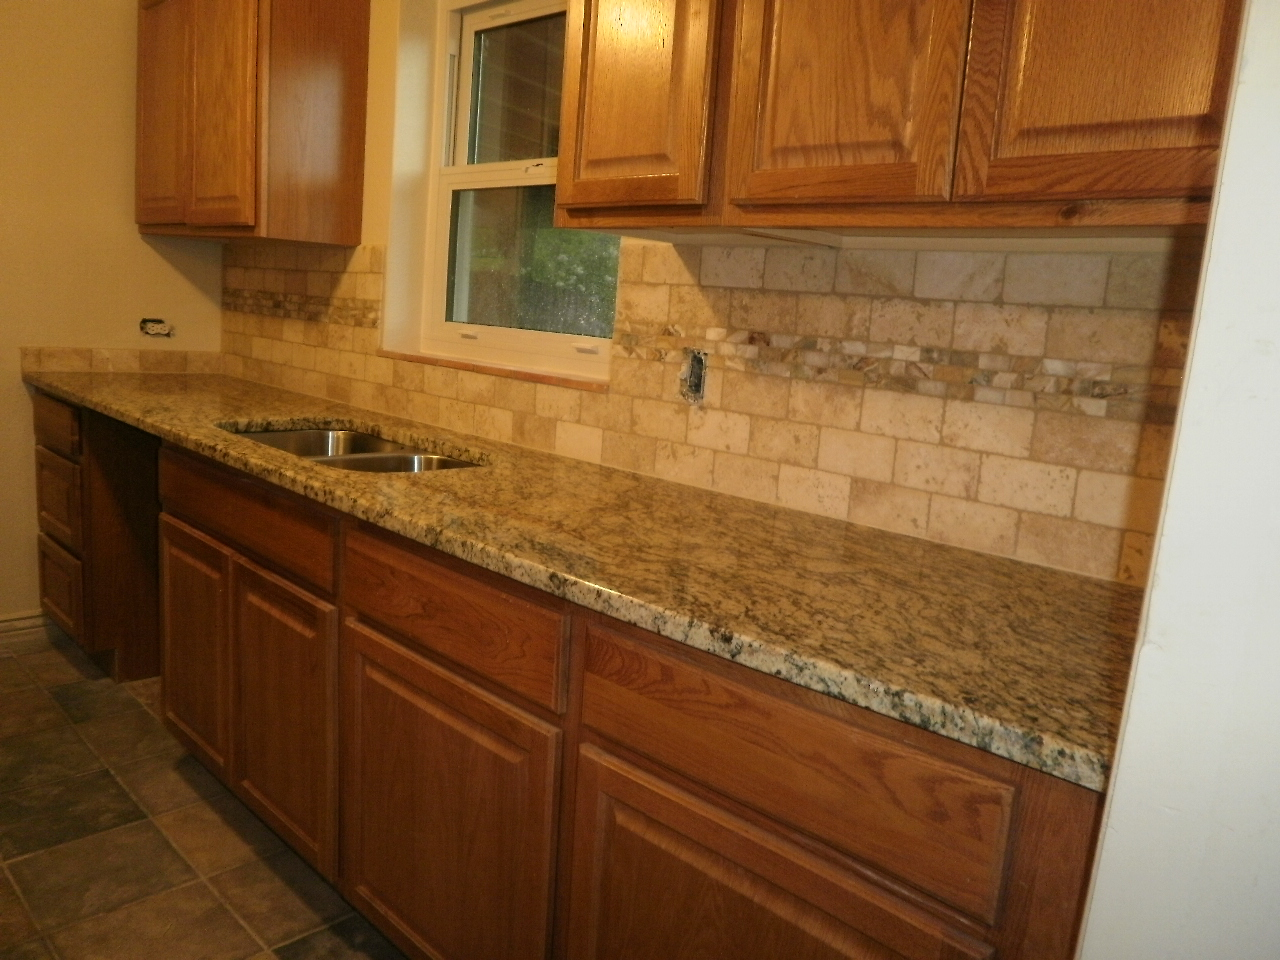 Integrity installations a division of front range backsplash just completed 3x6 - Kitchen tile backsplash photos ...